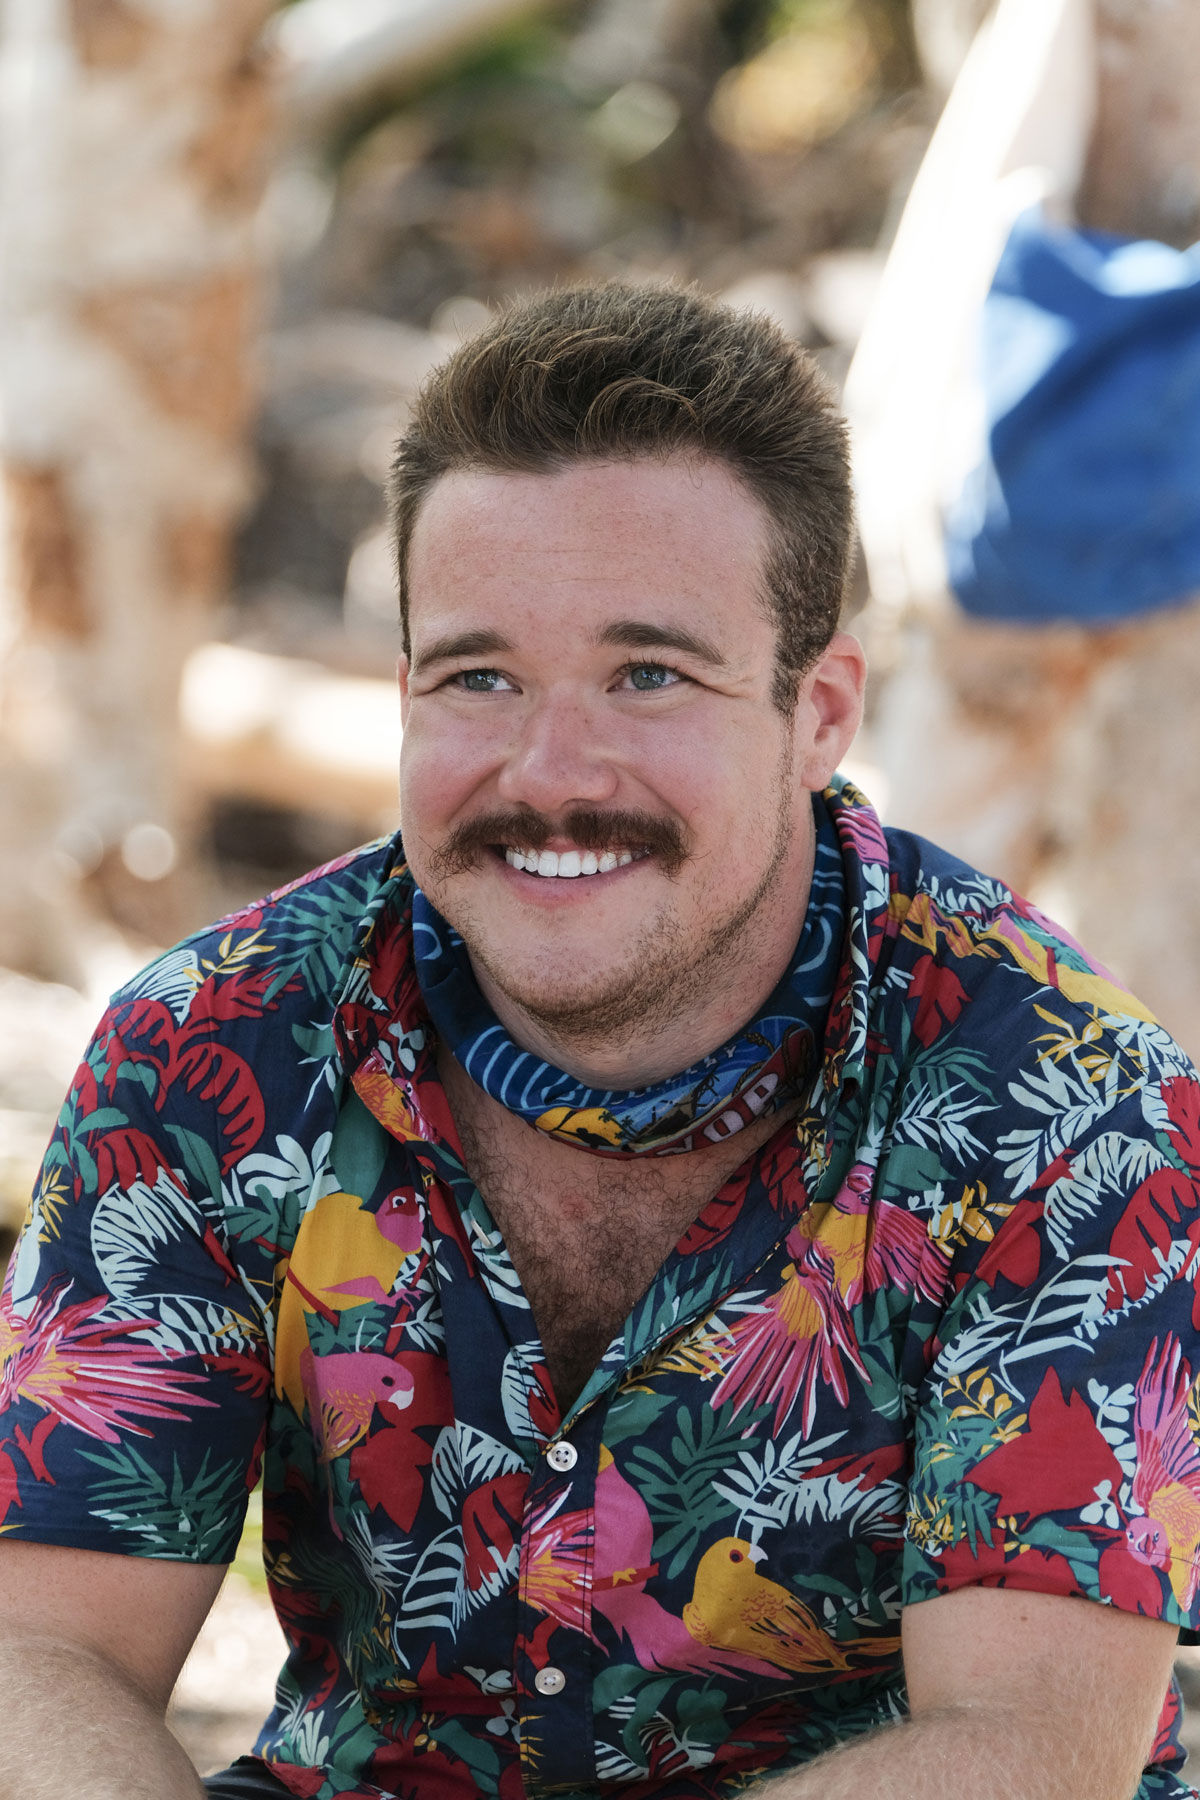 Zeke Smith was outed as transgender by fellow contestant Jeff Varner